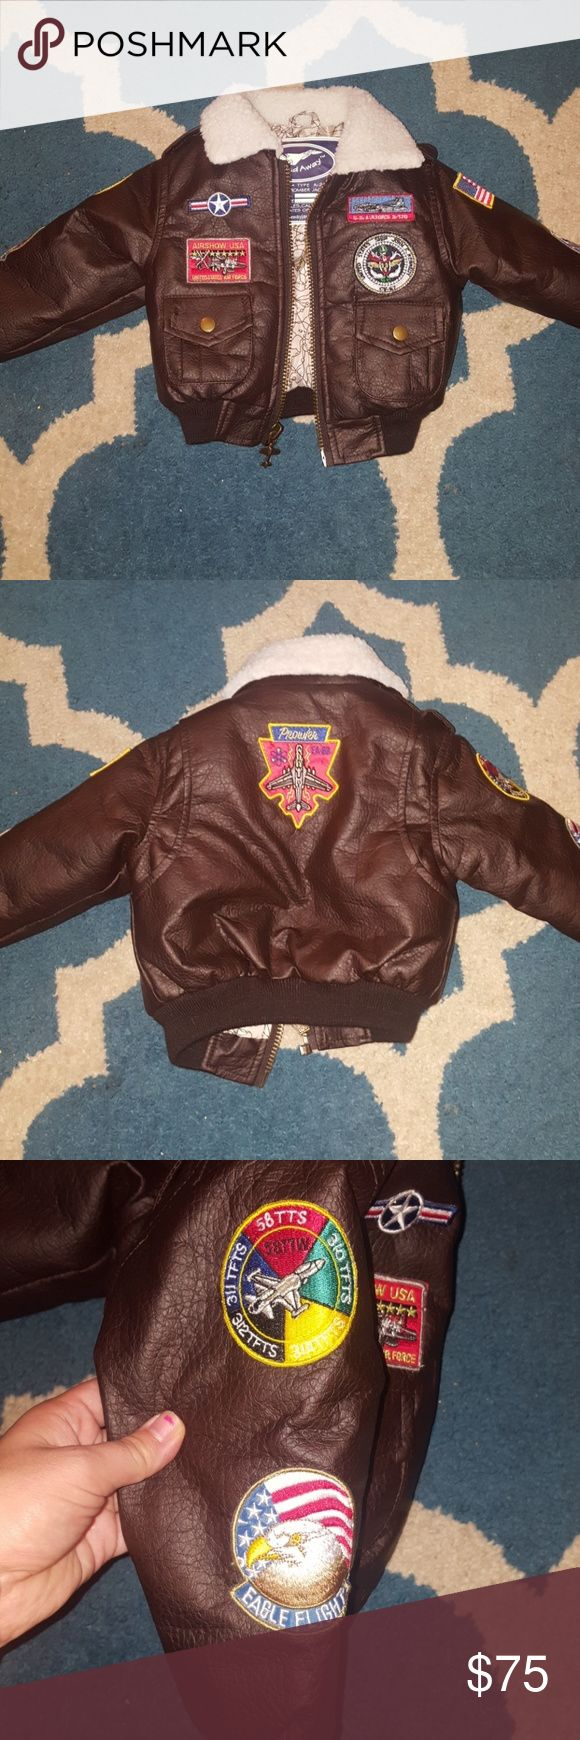 Toddler Bomber Jacket precious like new toddler bomber jacket. This is a very high quality, barely worn, adorable and warm bomber jacket for a little boy or girl. Up up and away jackets Jackets & Coats